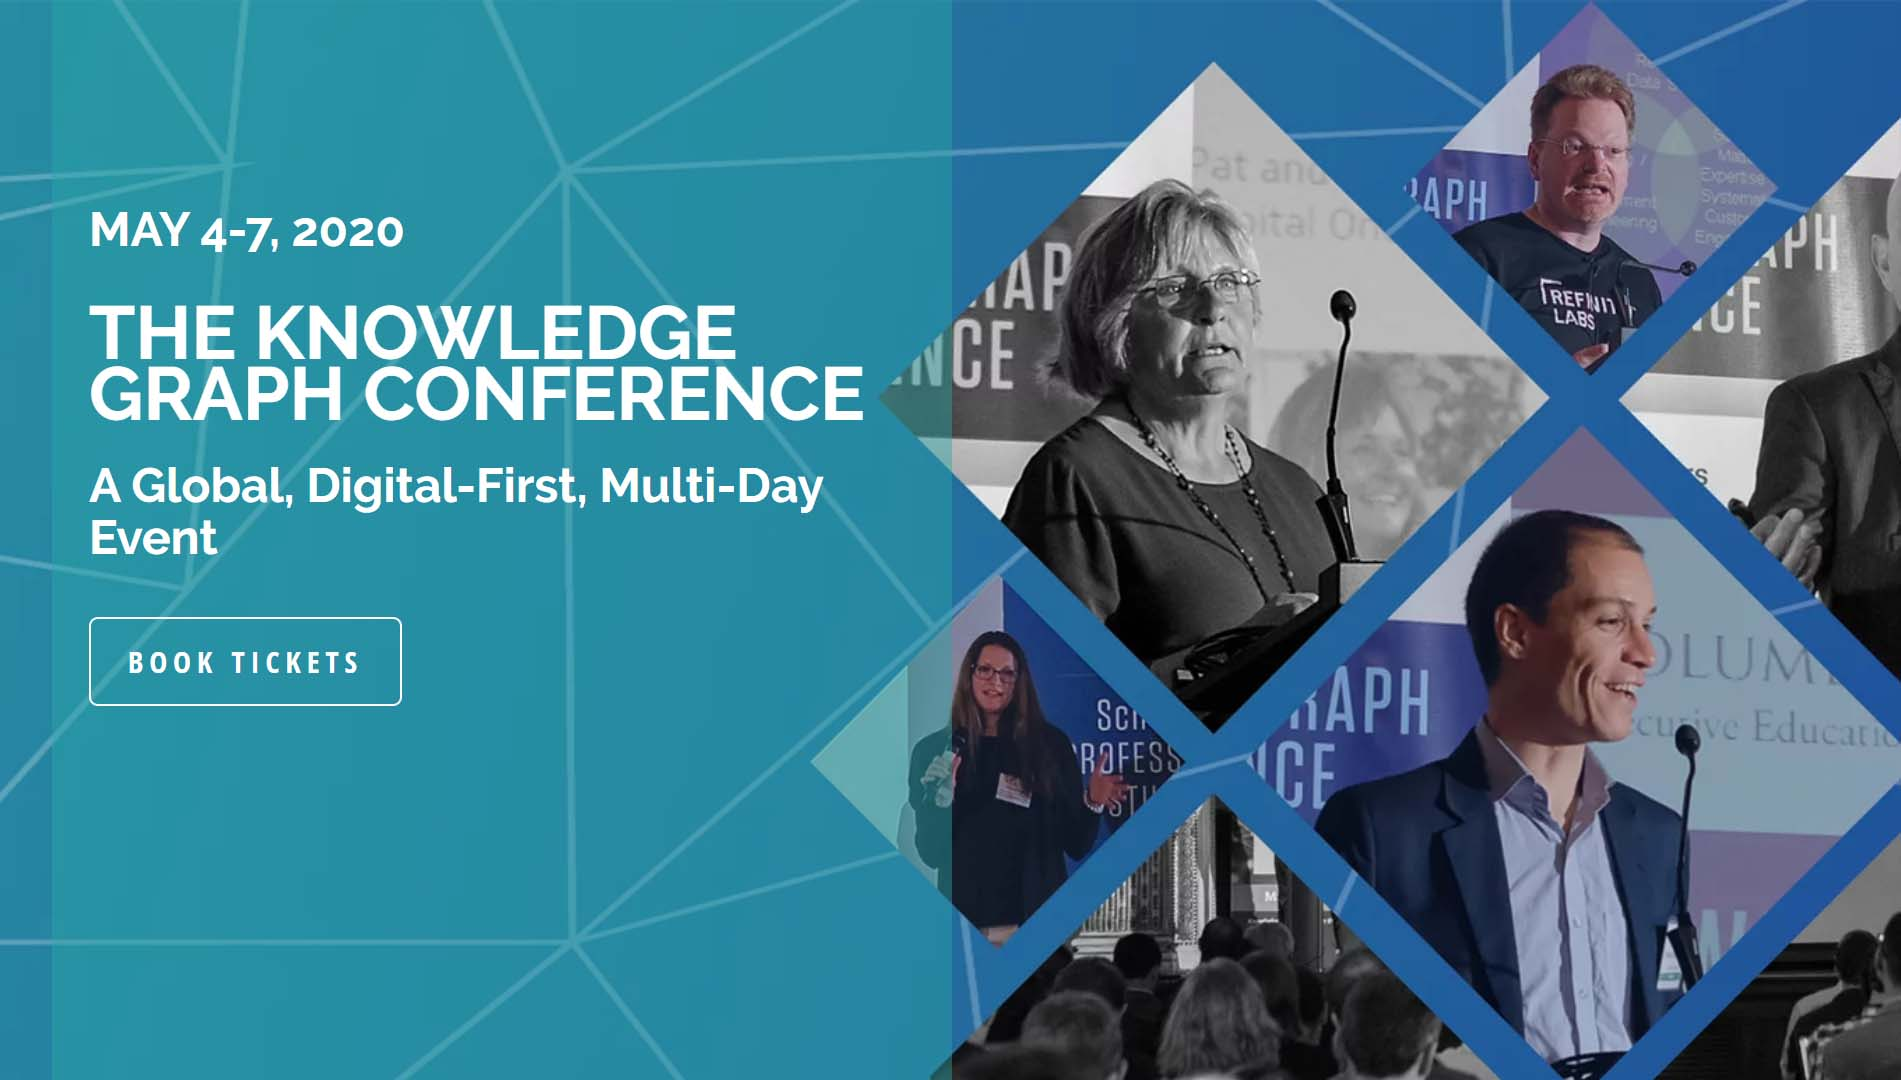 The Knowledge Graph Conference (KGC 2020)